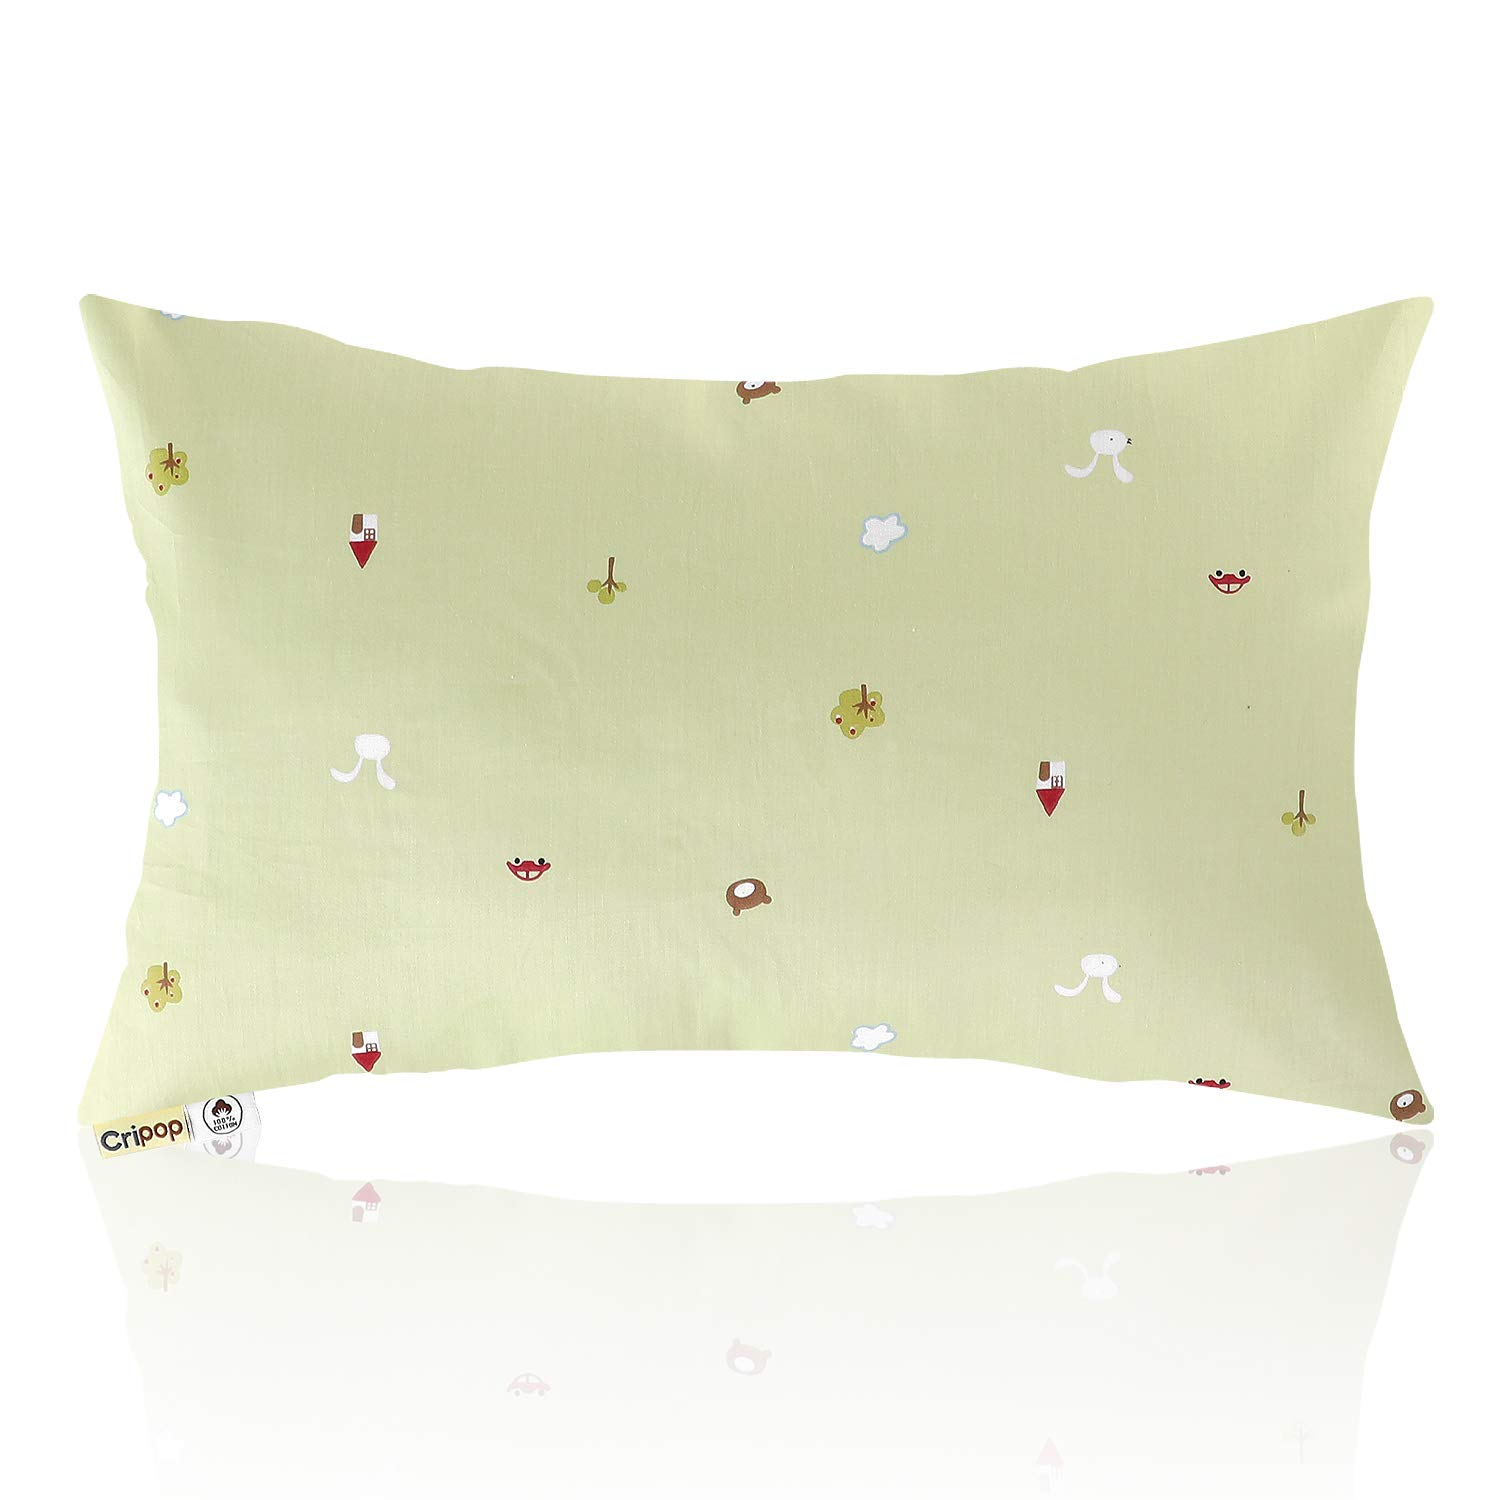 """CRIPOP Organic Cotton Toddler Pillow with Pillowcase - Natural Soft Kids Baby Pillows with 100% Cotton Cover and 100% Dupont Sorona Filler for Sleeping, 13"""" x 18"""", 11 Pattern Colors (Green World)"""